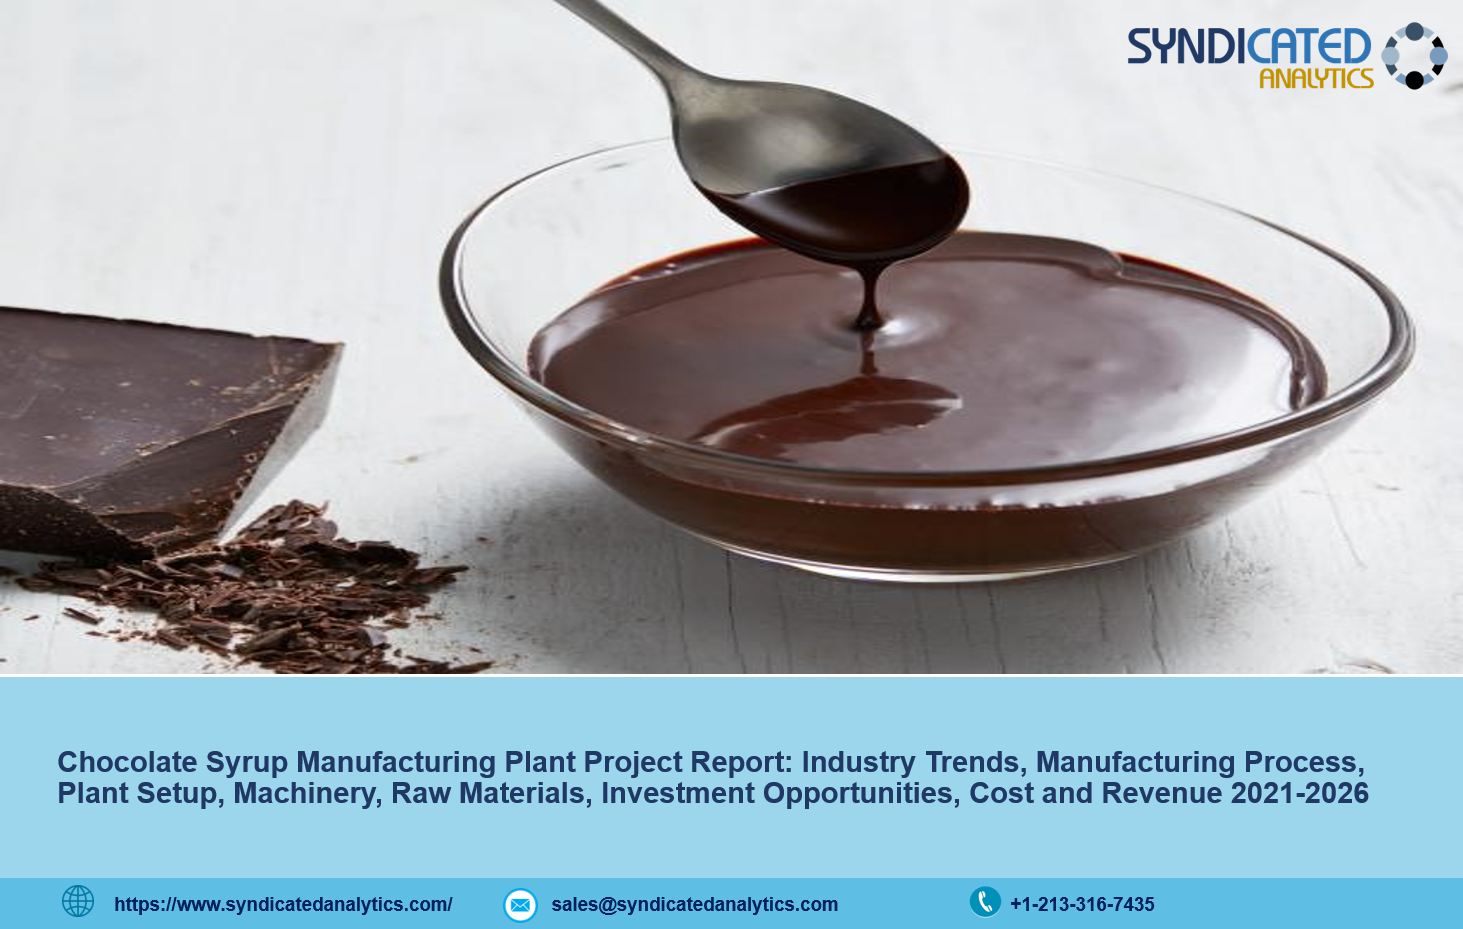 Chocolate Syrup Manufacturing Plant